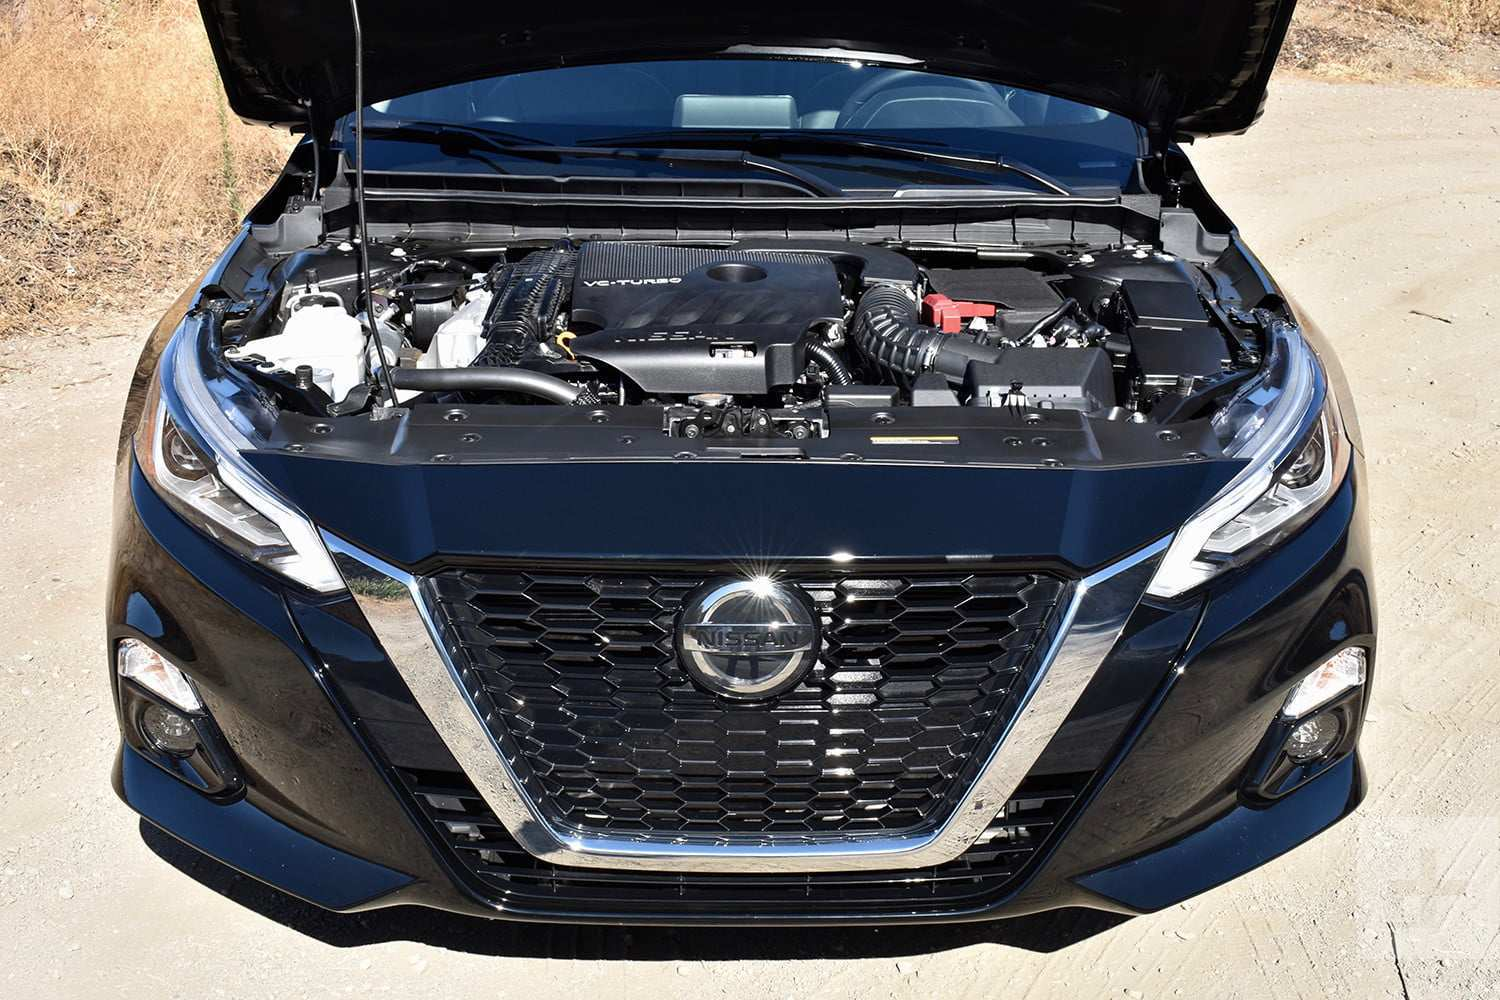 71 Great 2019 Nissan Altima Engine Performance and New Engine for 2019 Nissan Altima Engine